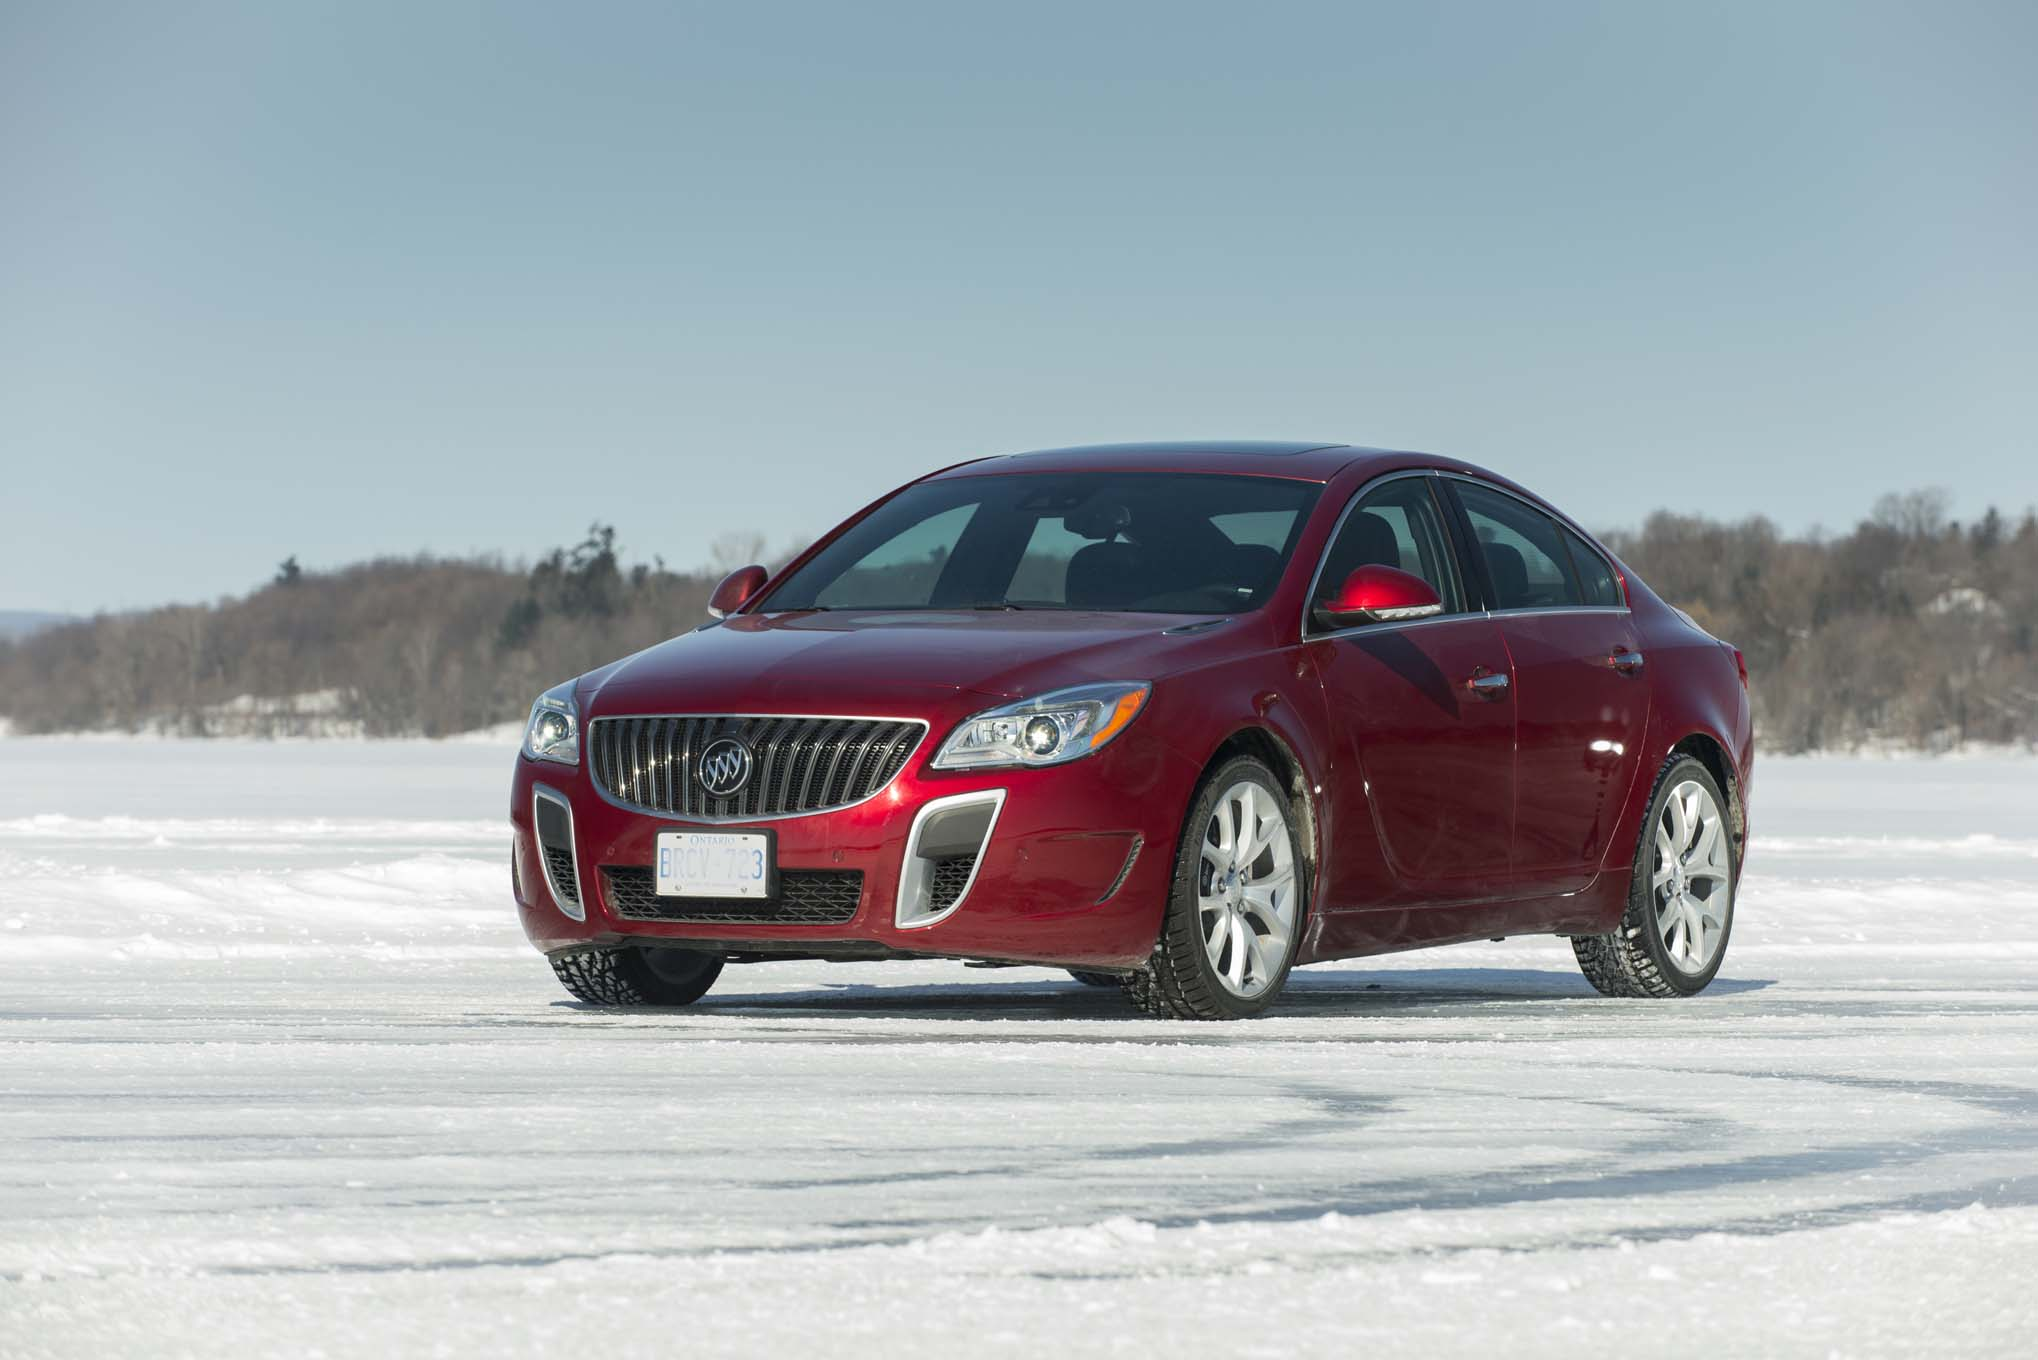 2014 Buick Regal GS AWD Review - Automobile Magazine